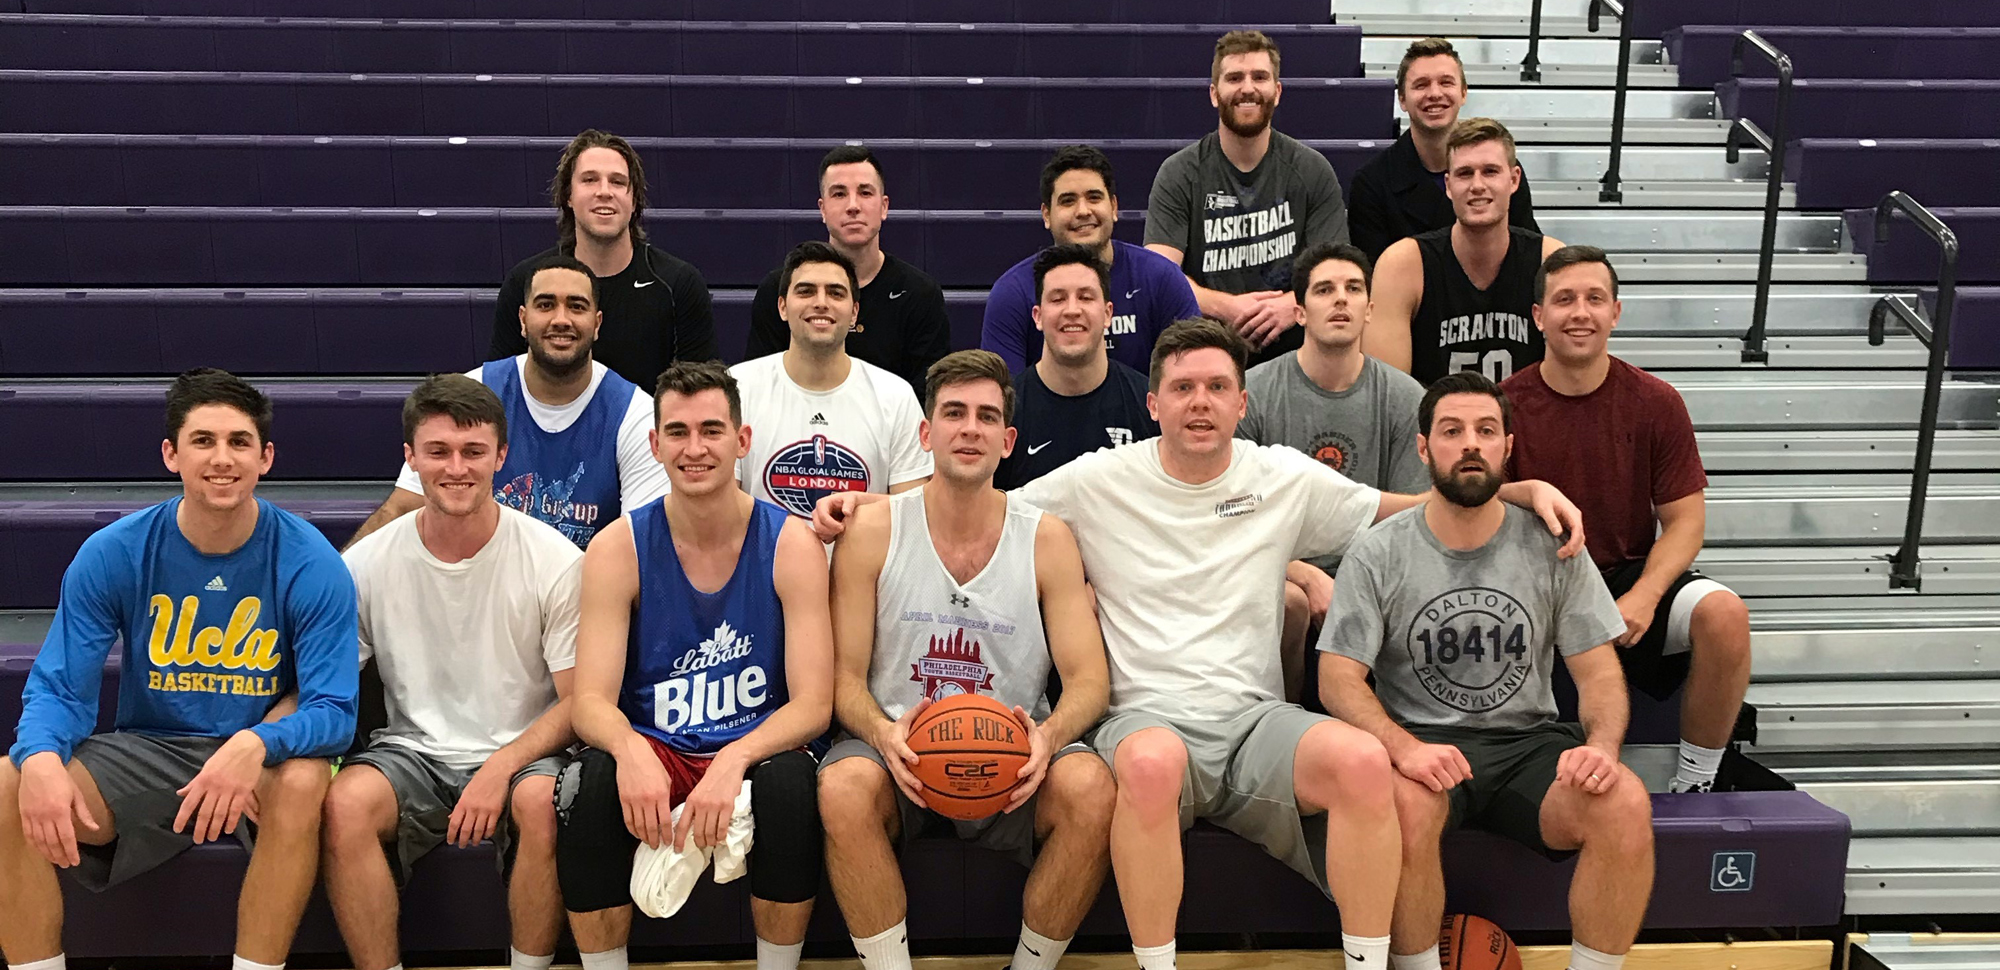 Scranton welcomed back 17 former players for Saturday's alumni game which was won by the Old Alums, 88-84.